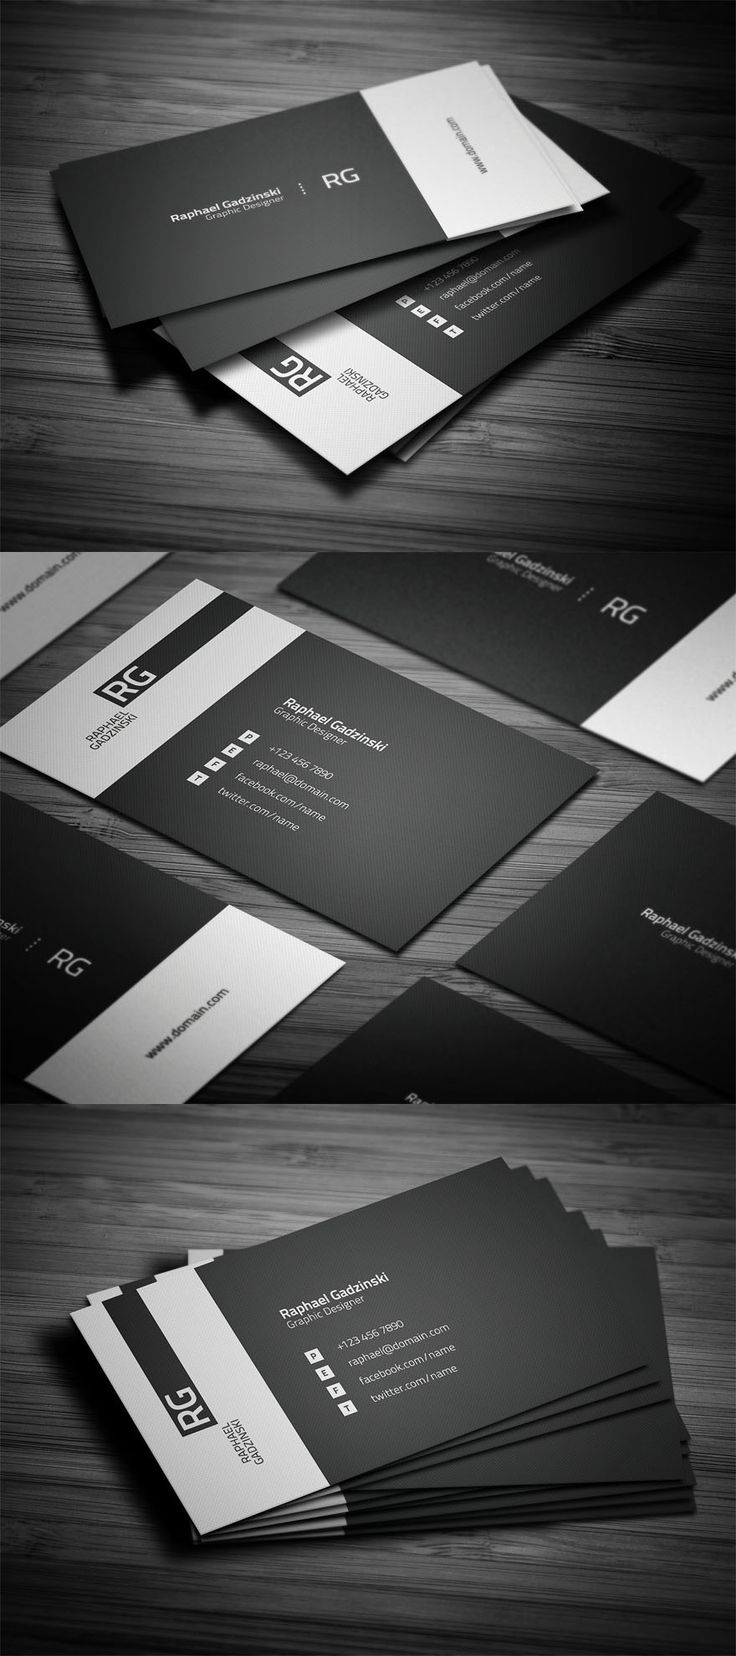 25 Creative Corporate themed Business Card Design examples. Follow us www.pinterest.com/webneel